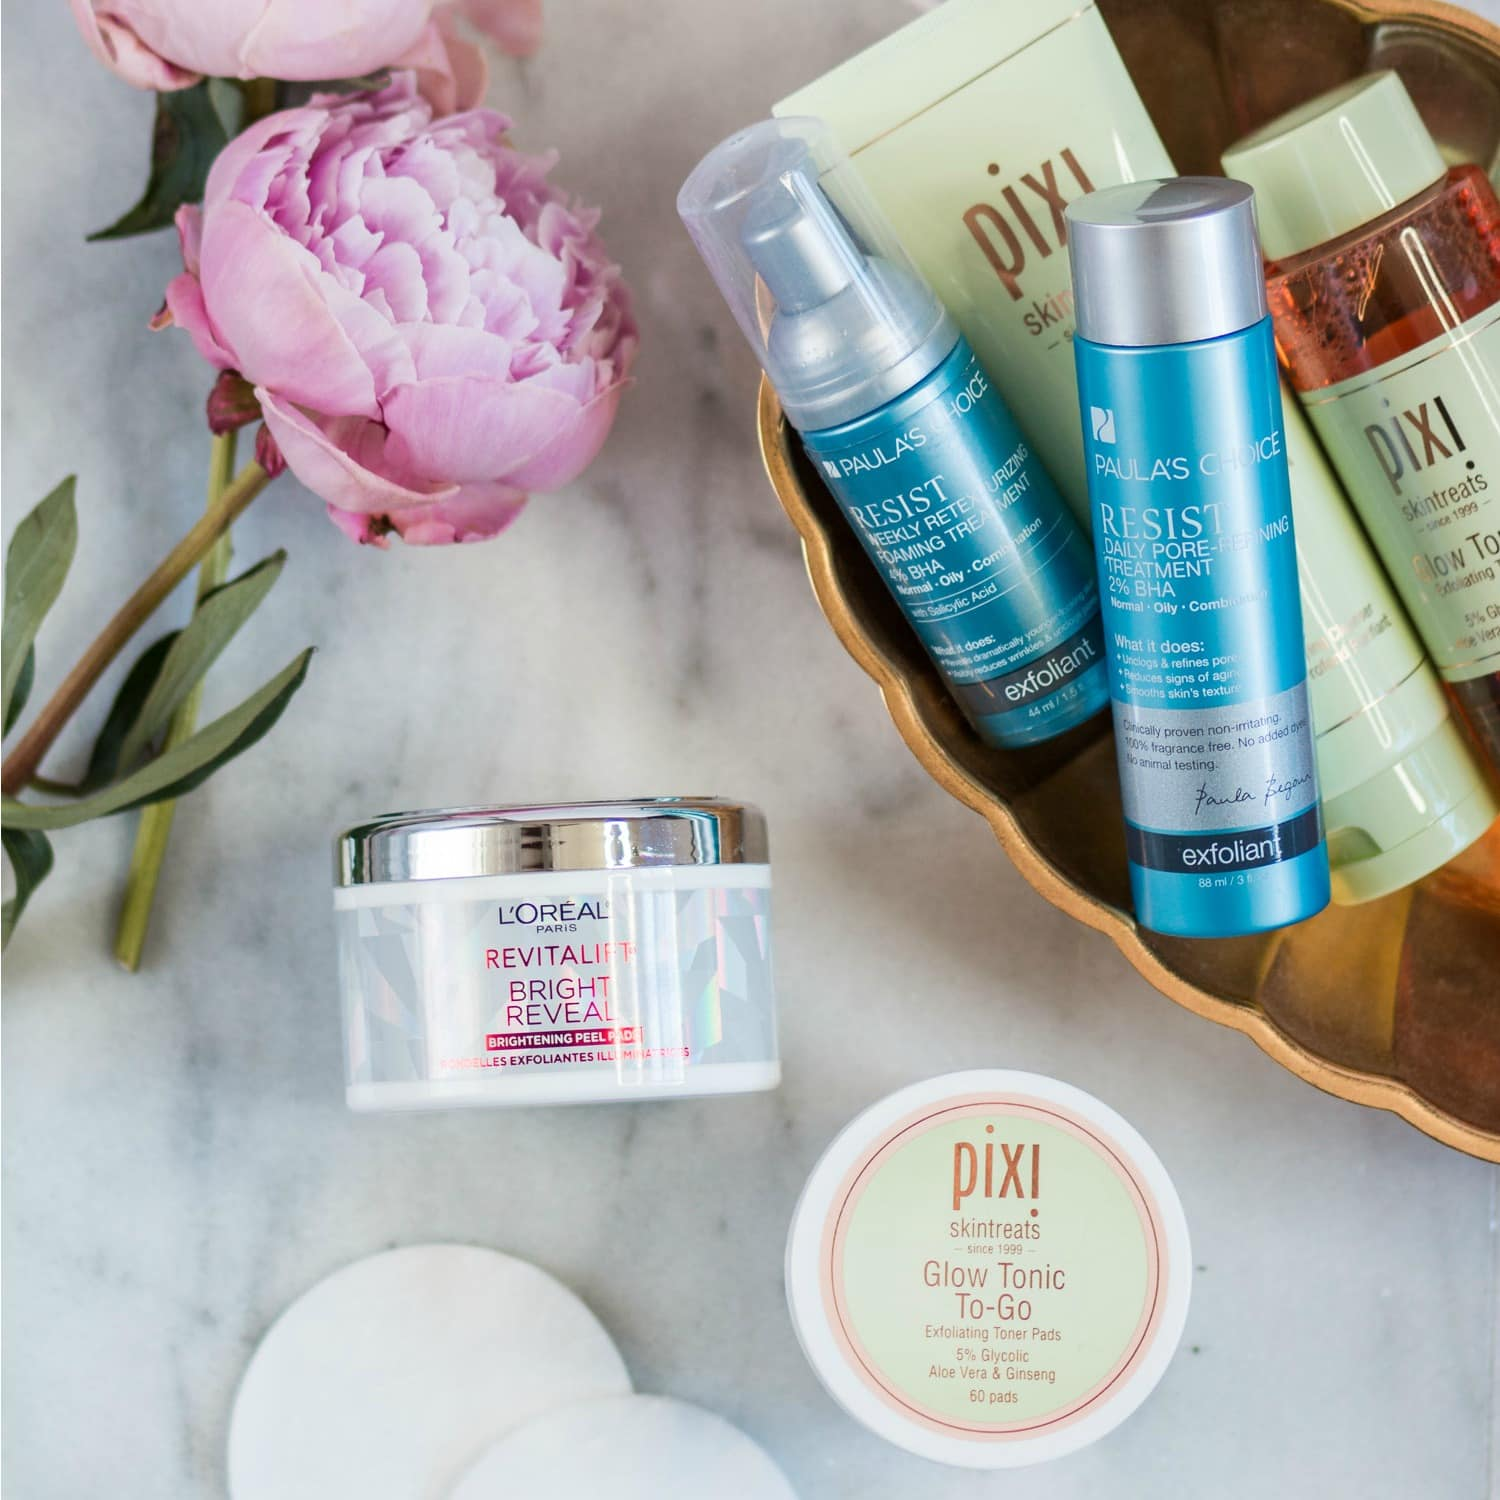 The best skincare products for women in their 20s + an Elizabeth Arden skincare giveaway written by beauty blogger Ashley Brooke Nicholas